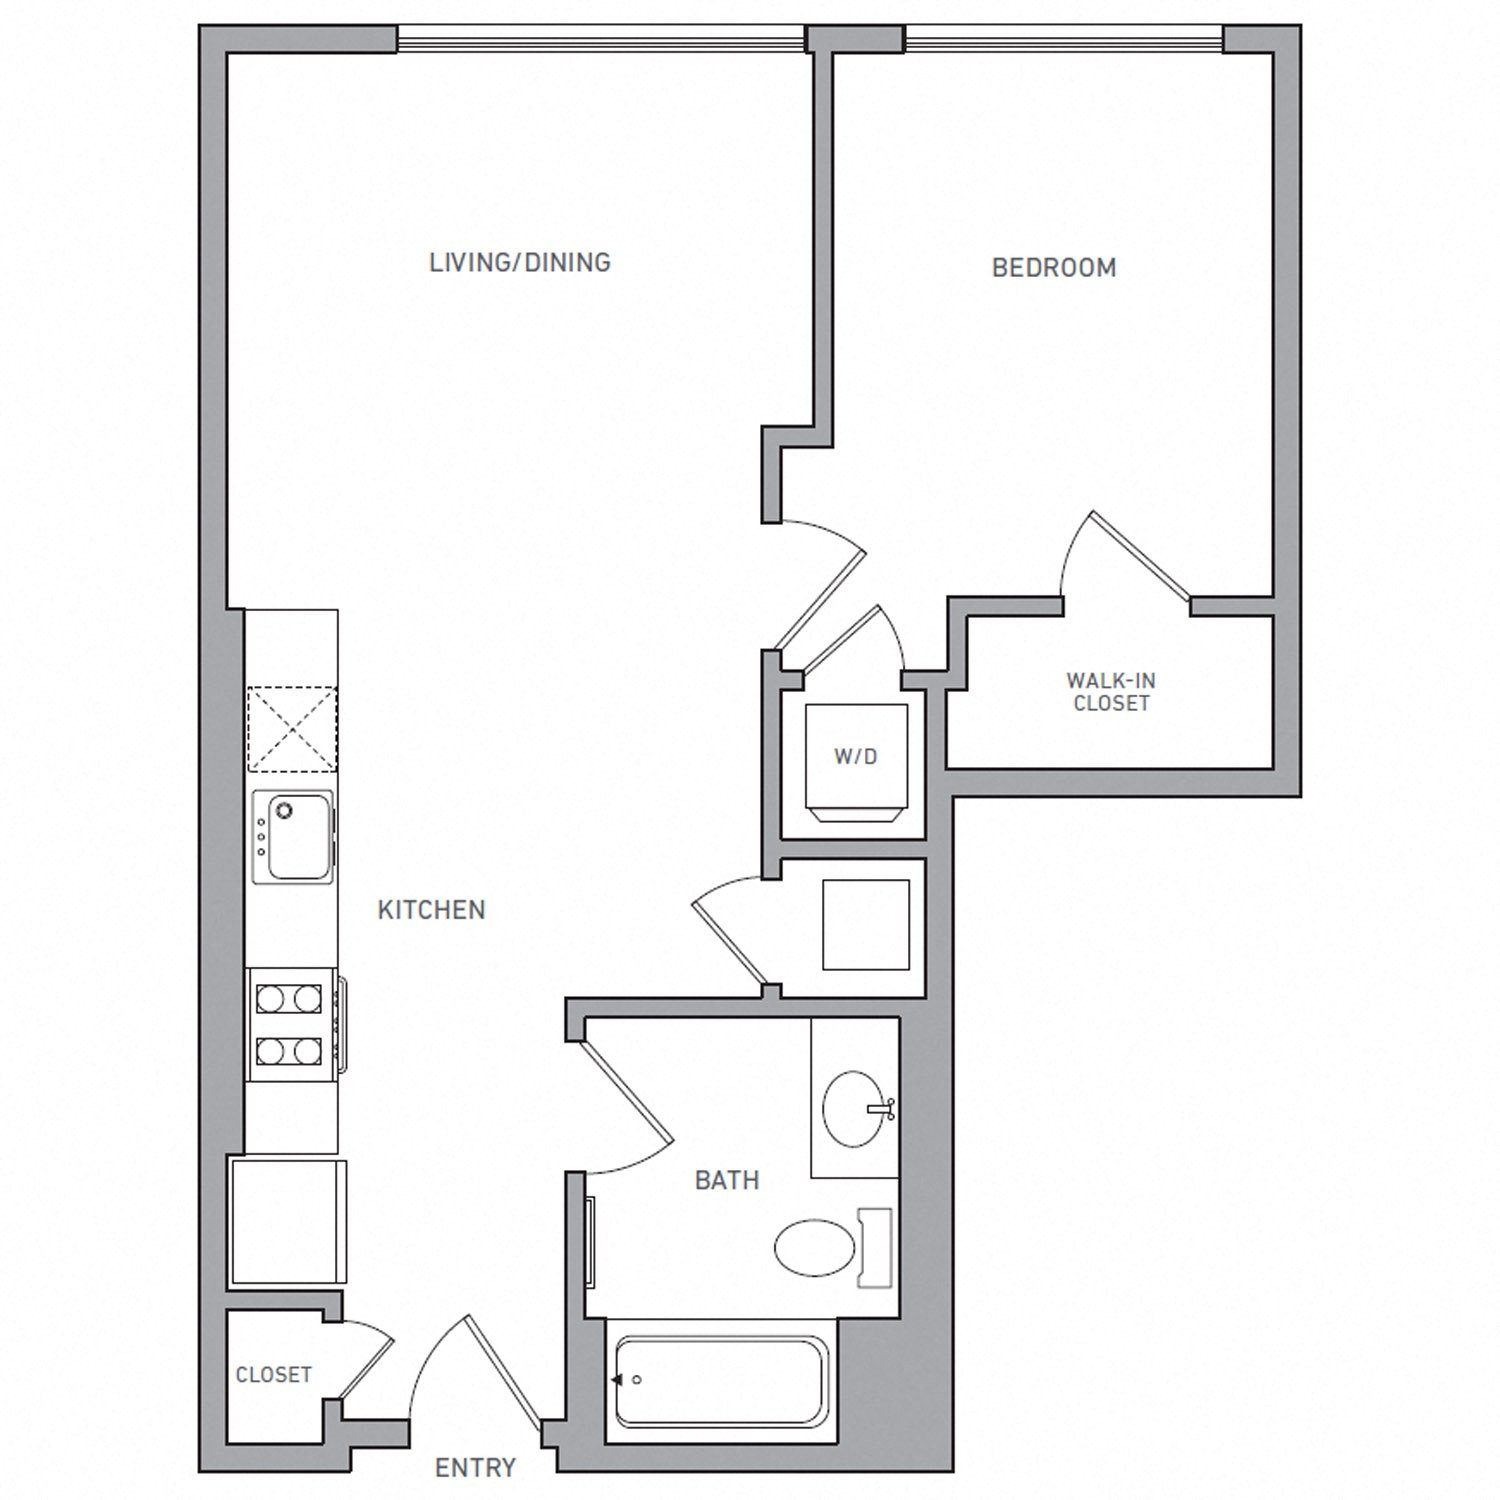 A Two floor plan diagram. One bedroom, one bathroom, an open kitchen and living area, and a washer dryer.